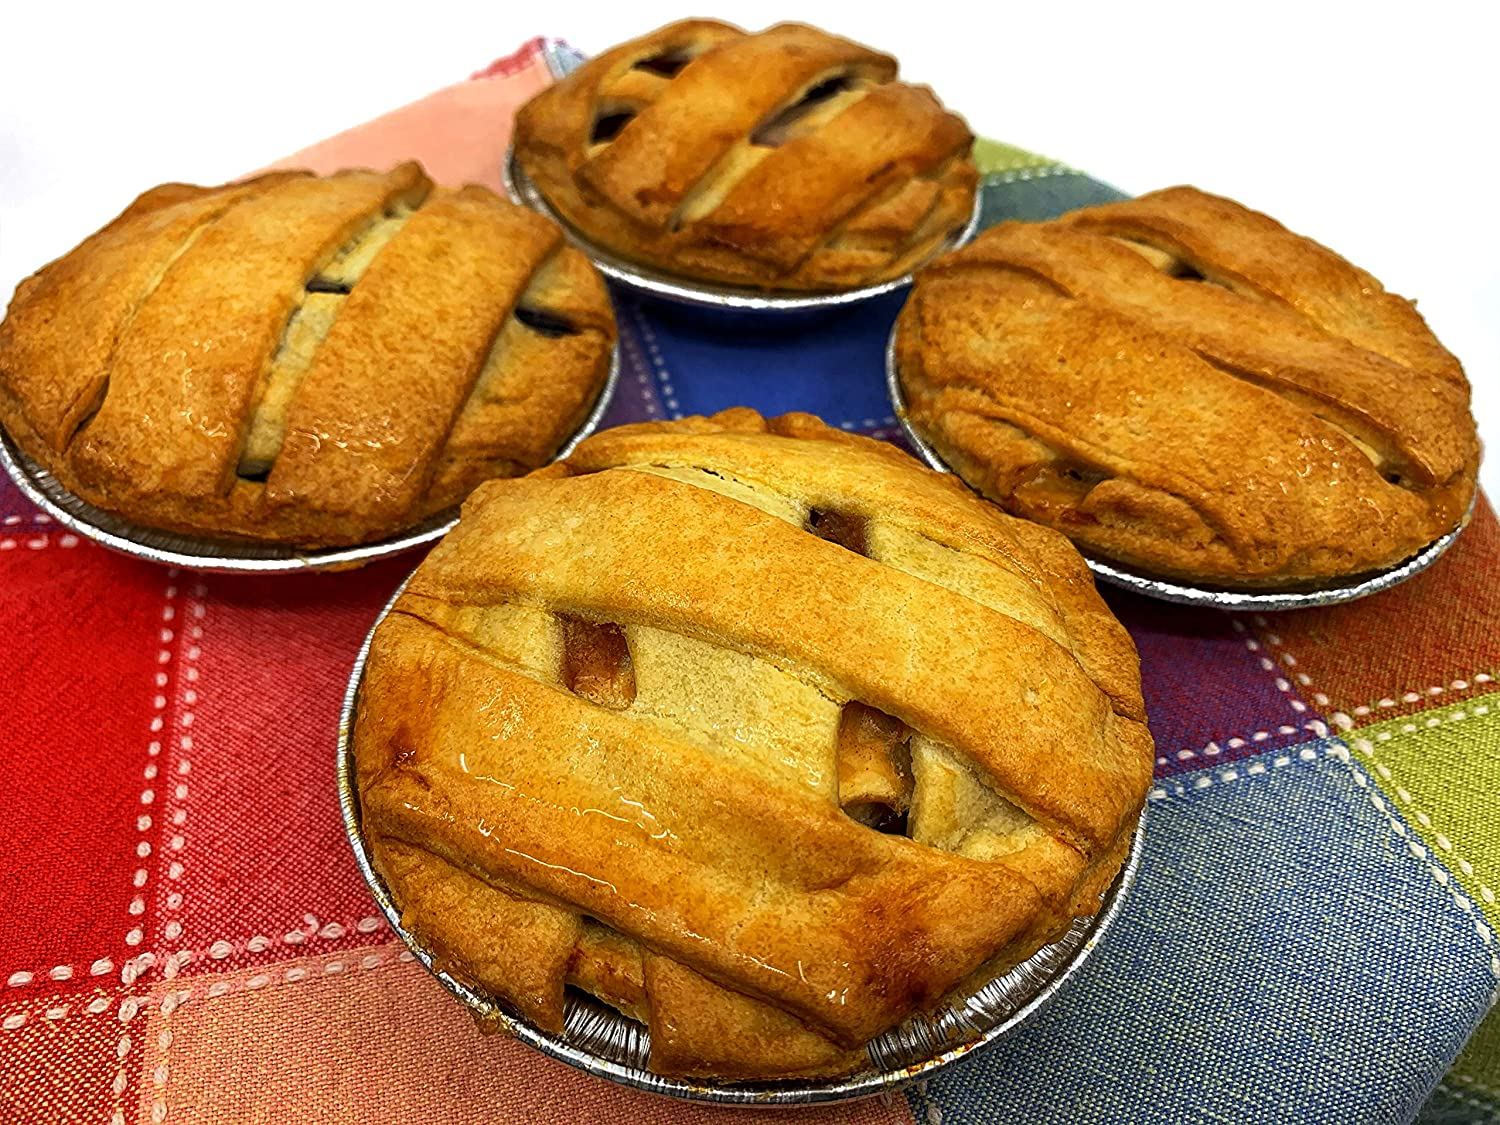 The Baking Institute's Gourmet Fresh Baked 4 inch Mini Pies - 7 oz - Blueberry, Cherry, Peach, & Apple - Individually Wrapped Desserts in Assorted Flavors